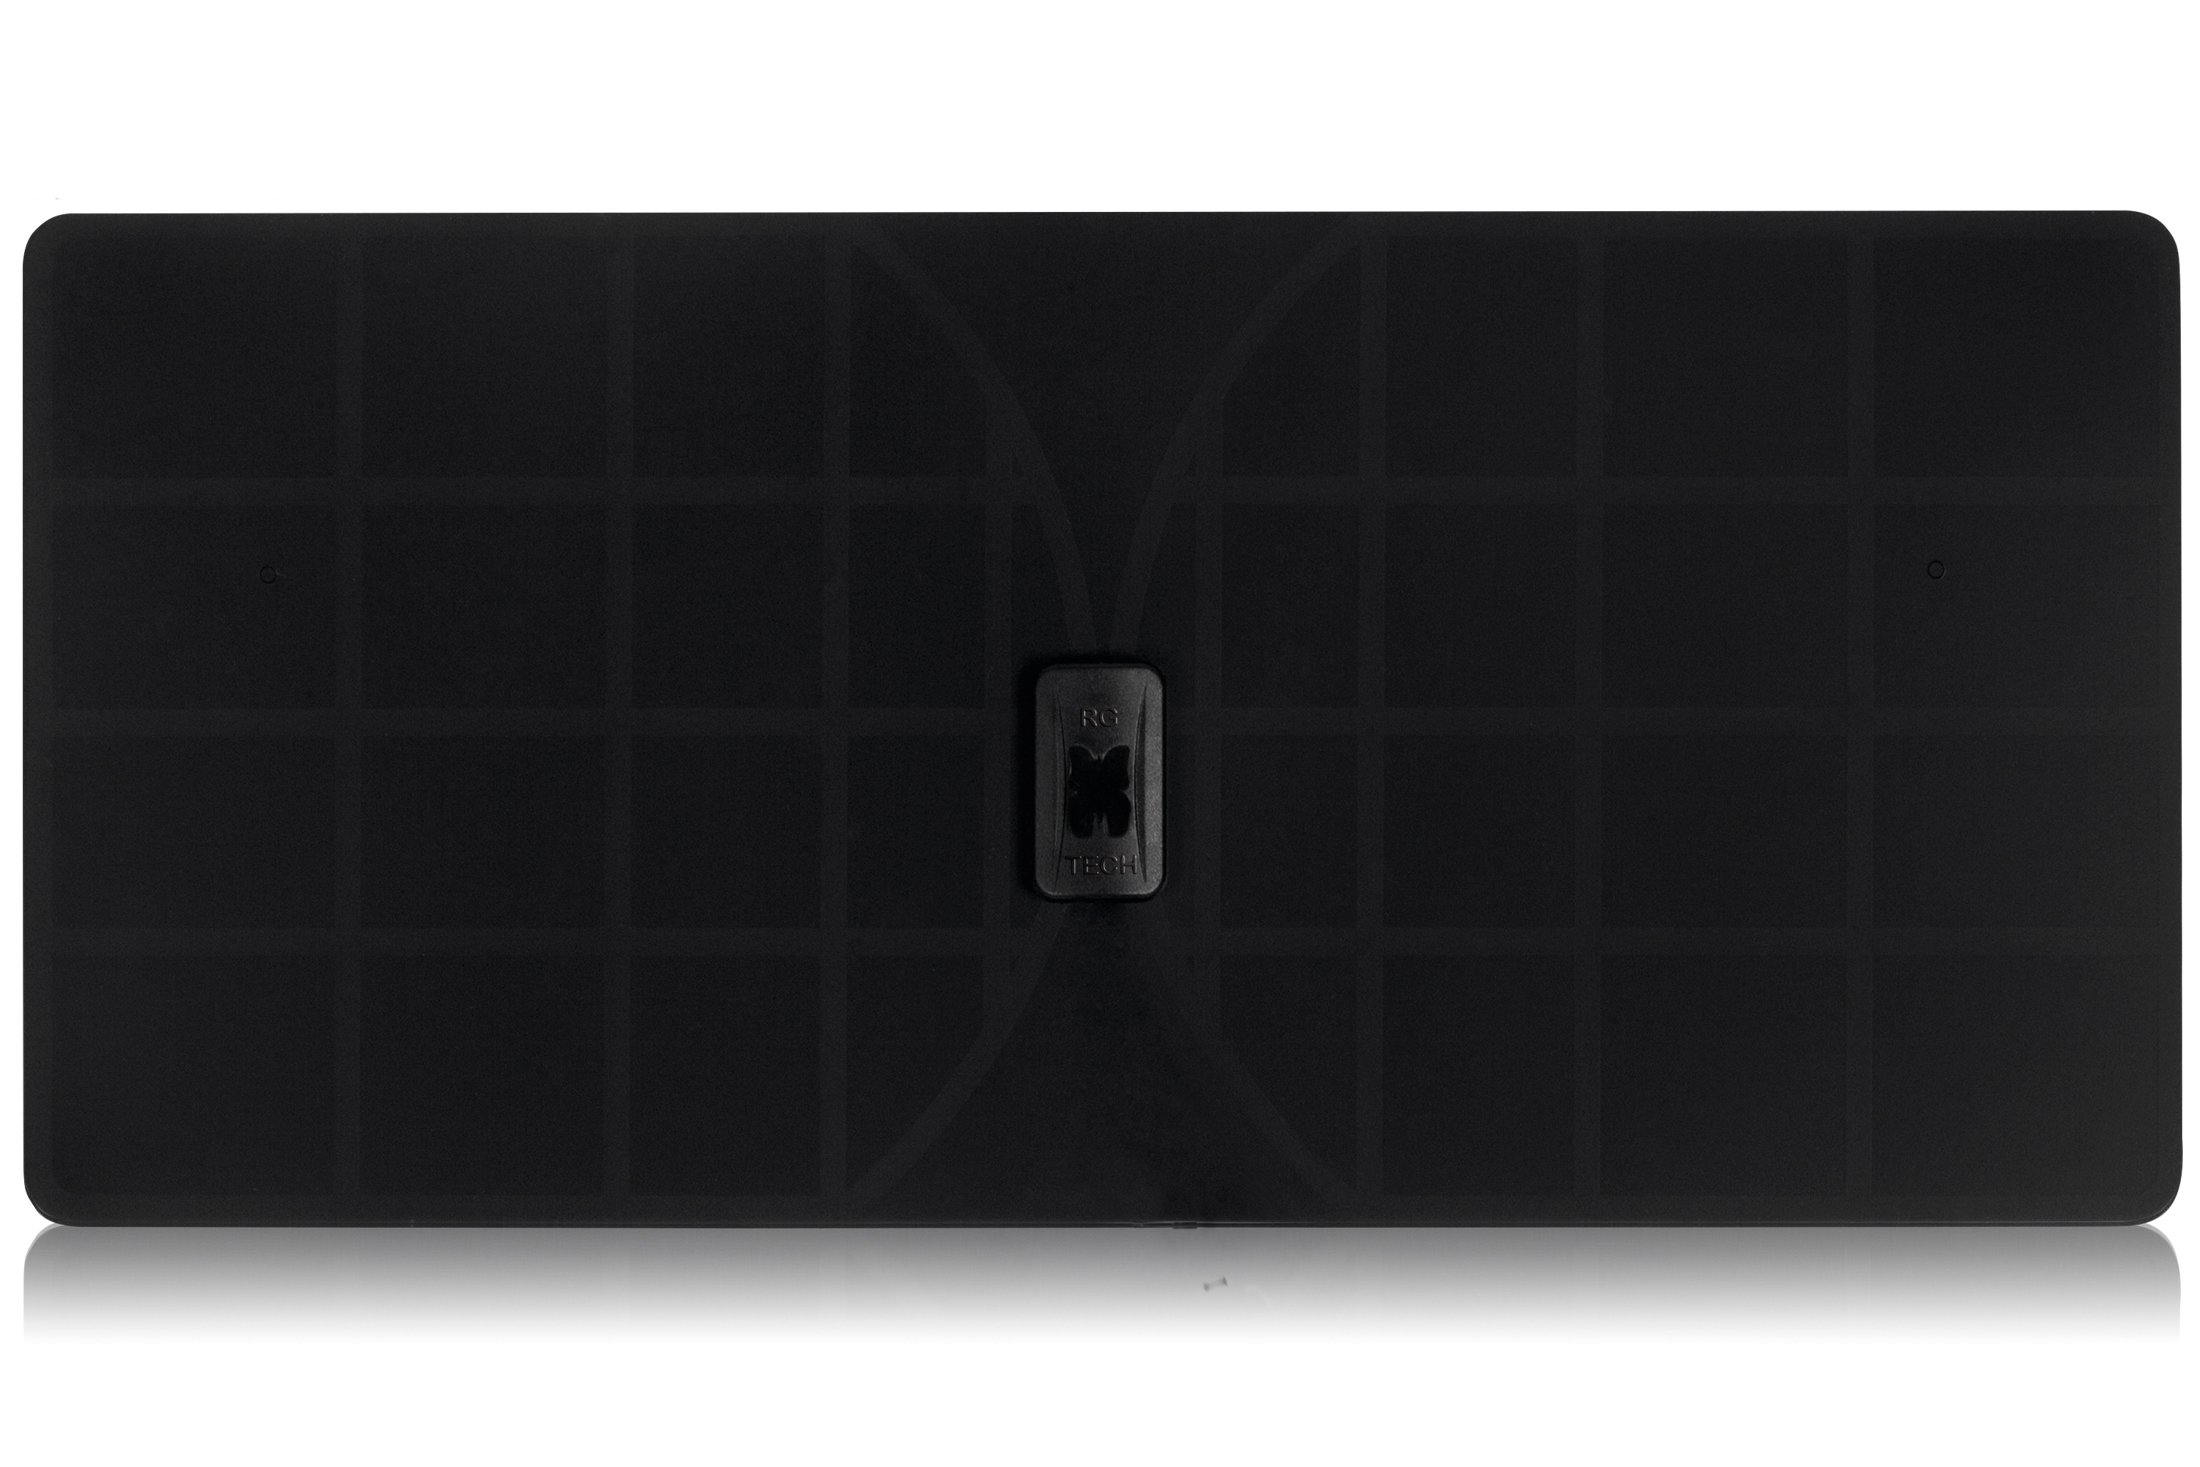 RGTech Monarch 50 Black Flat Paper Thin Indoor HDTV Antenna - 50 Mile Range Multidirectional Reception, UWB Technology and 4G Filter for Maximum UHF/VHF/FM/USB TV Tuner/DVB-T/DAB Radio Reception